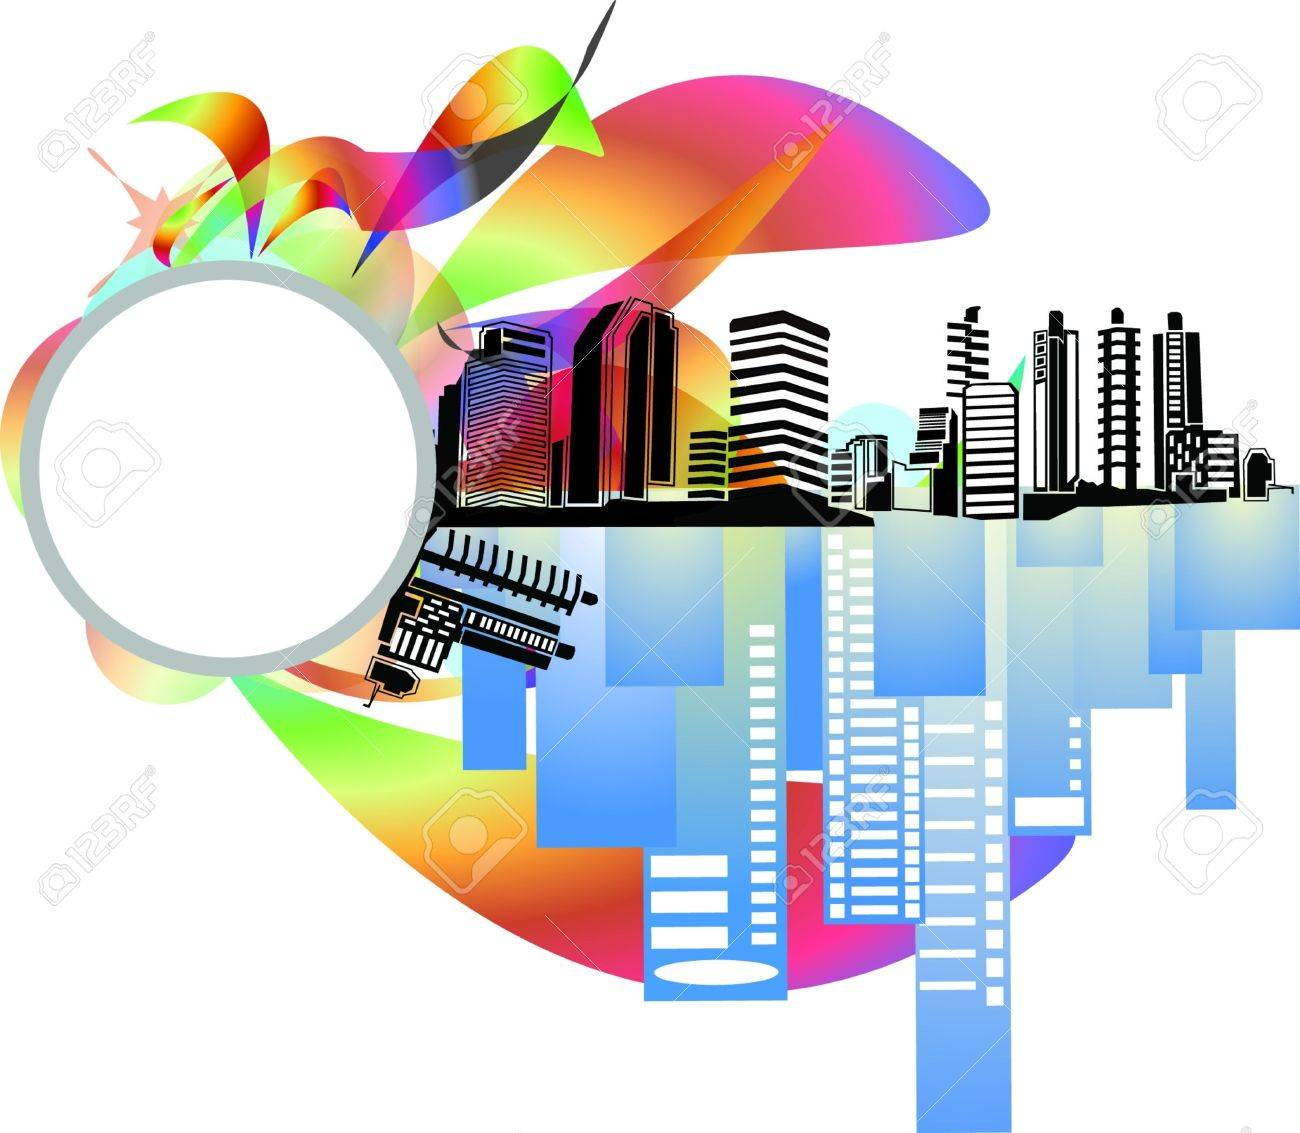 City building background, icon and business cards Stock Vector - 13526881